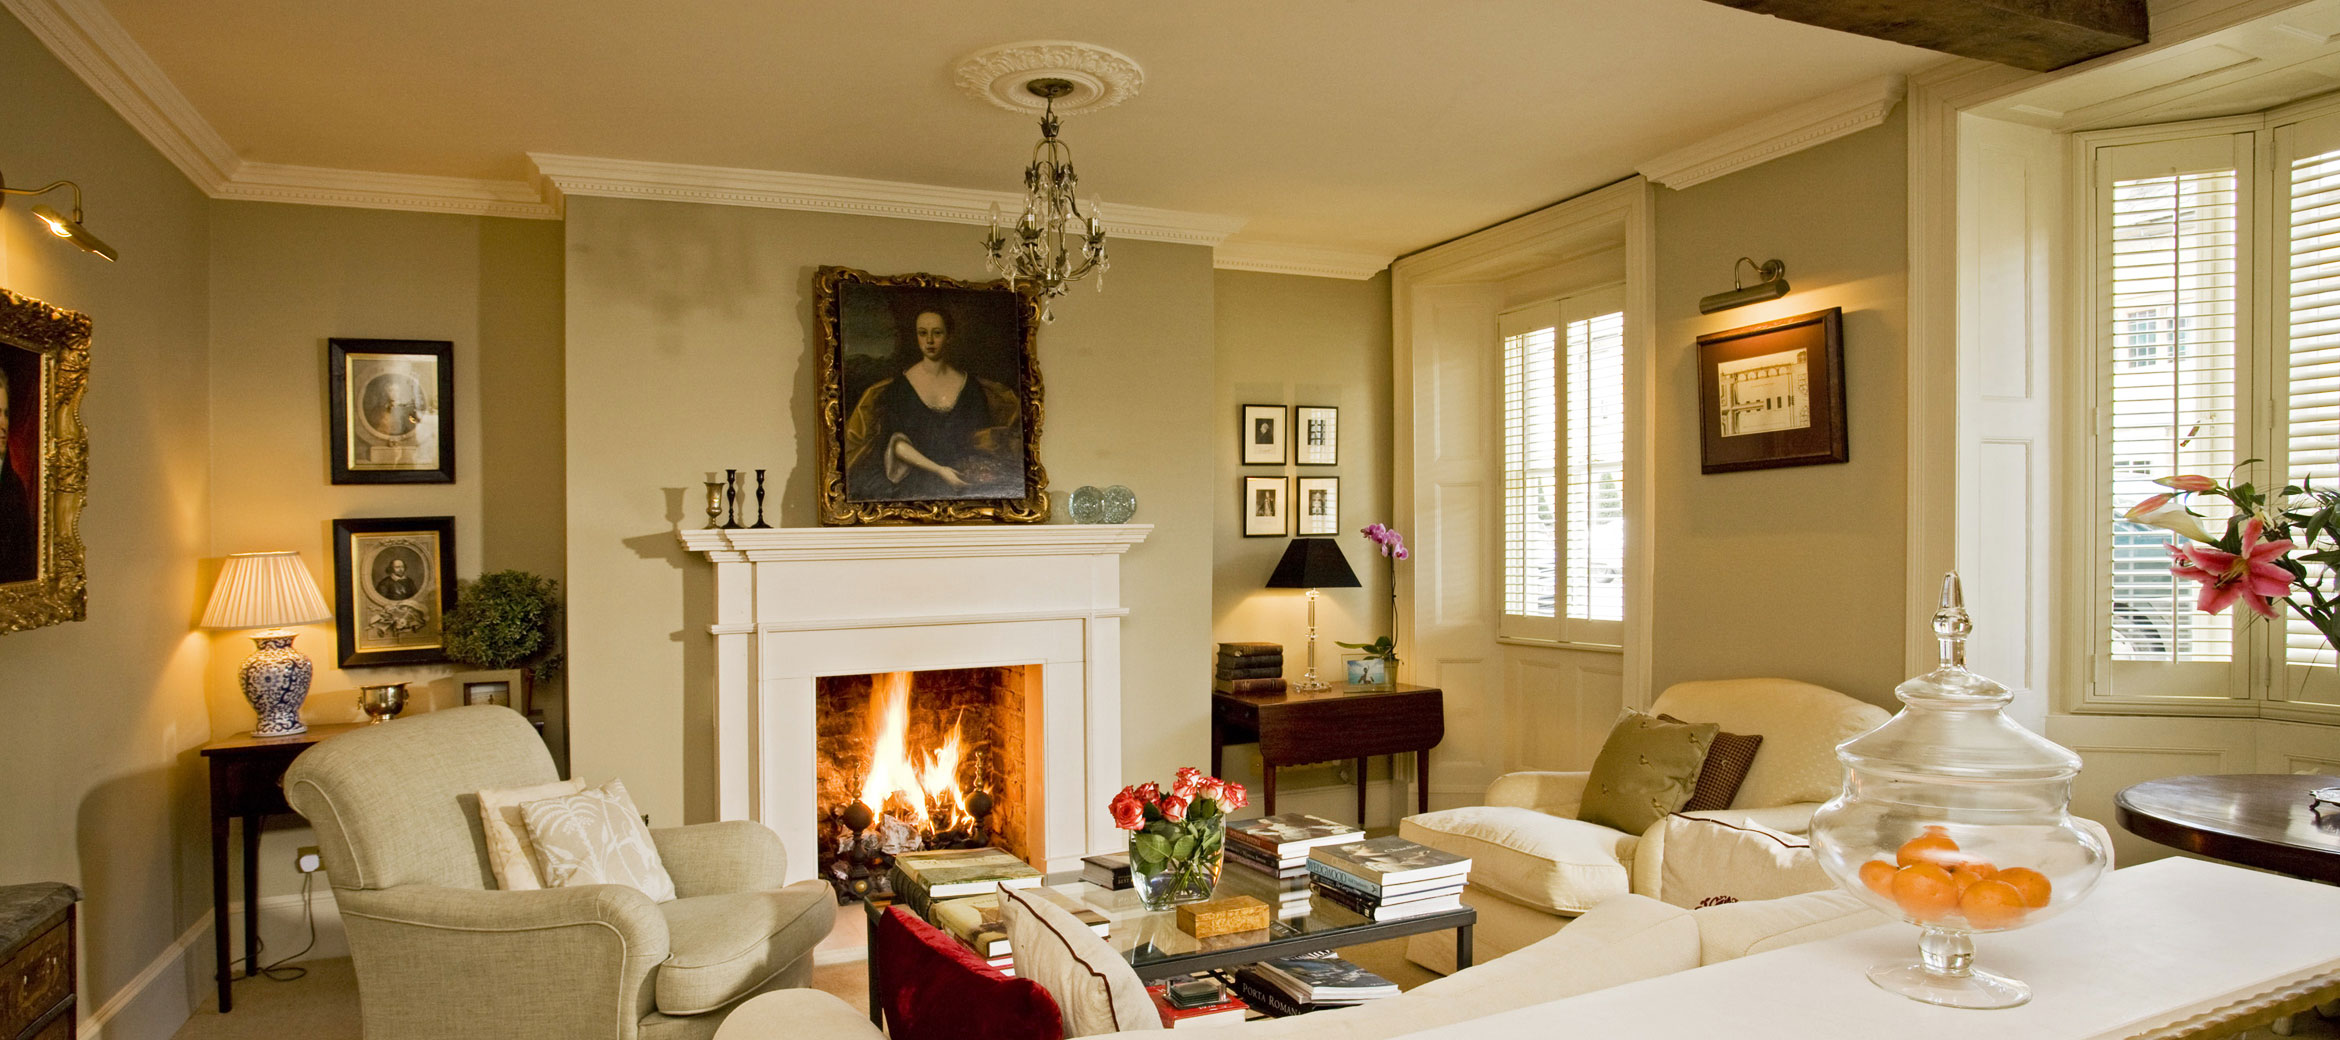 Singer-House-chipping-campden-drawing-room